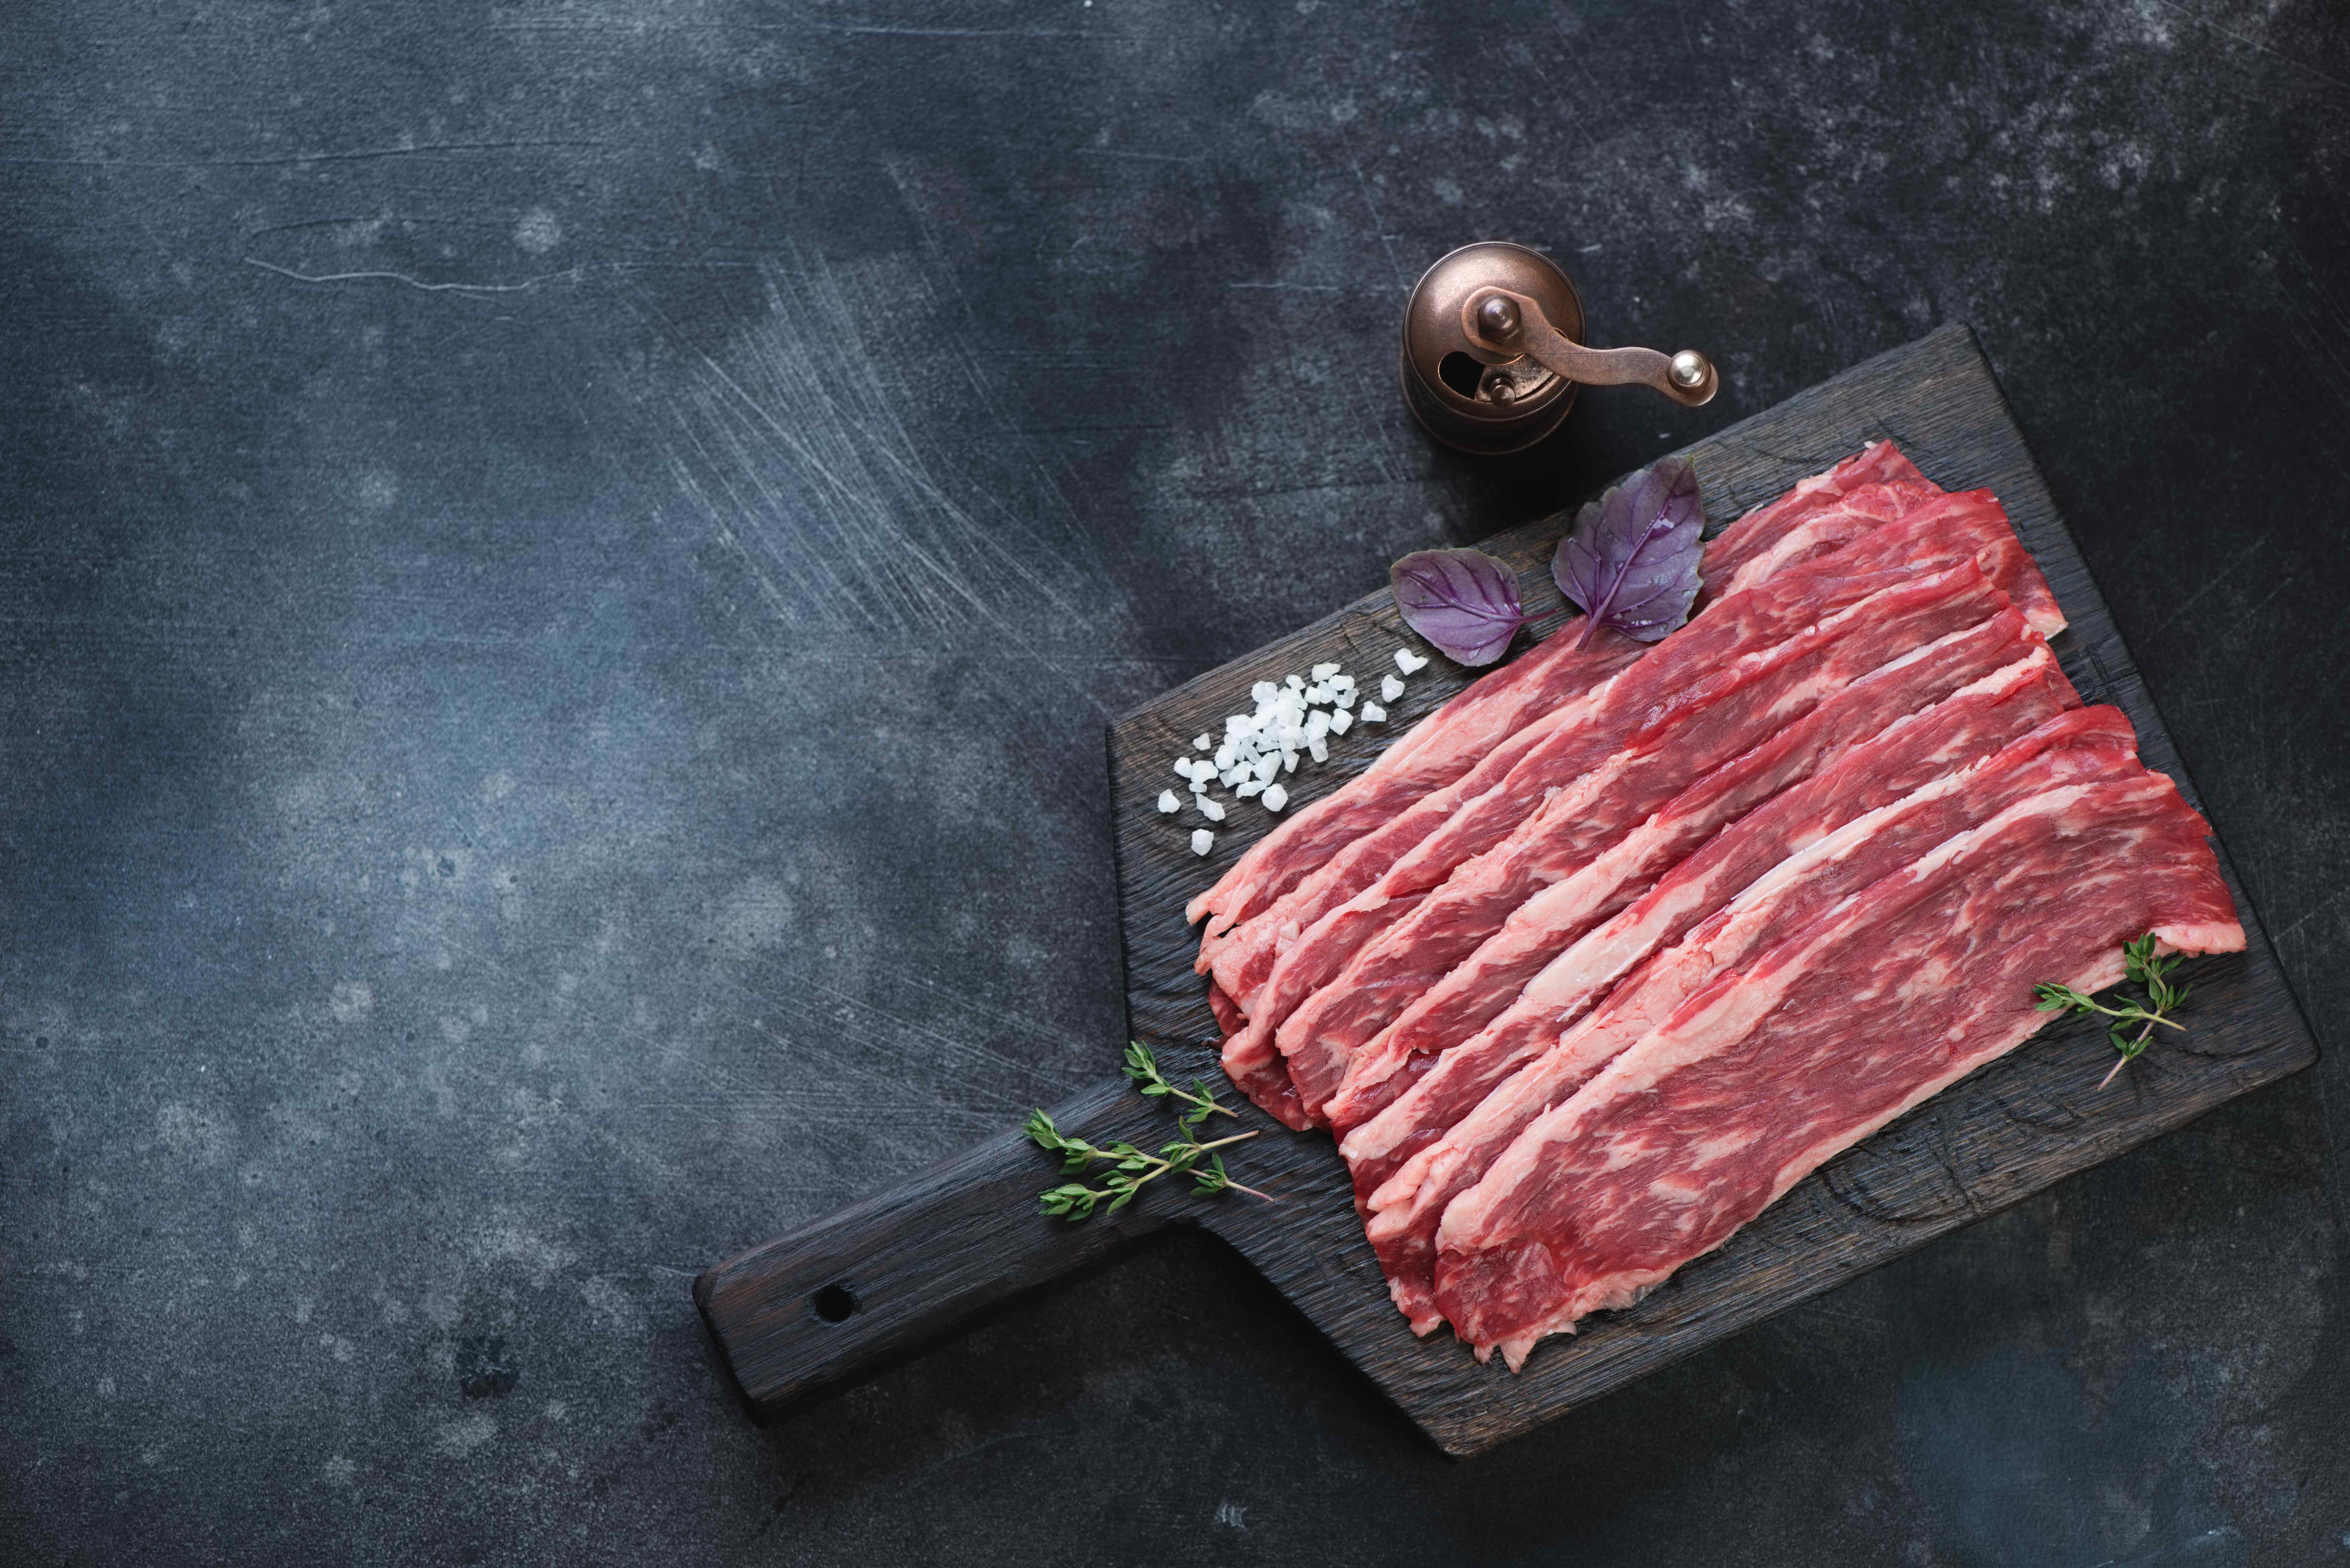 Beef bacon is available at farmerks markets in Yellowstone Country Montana